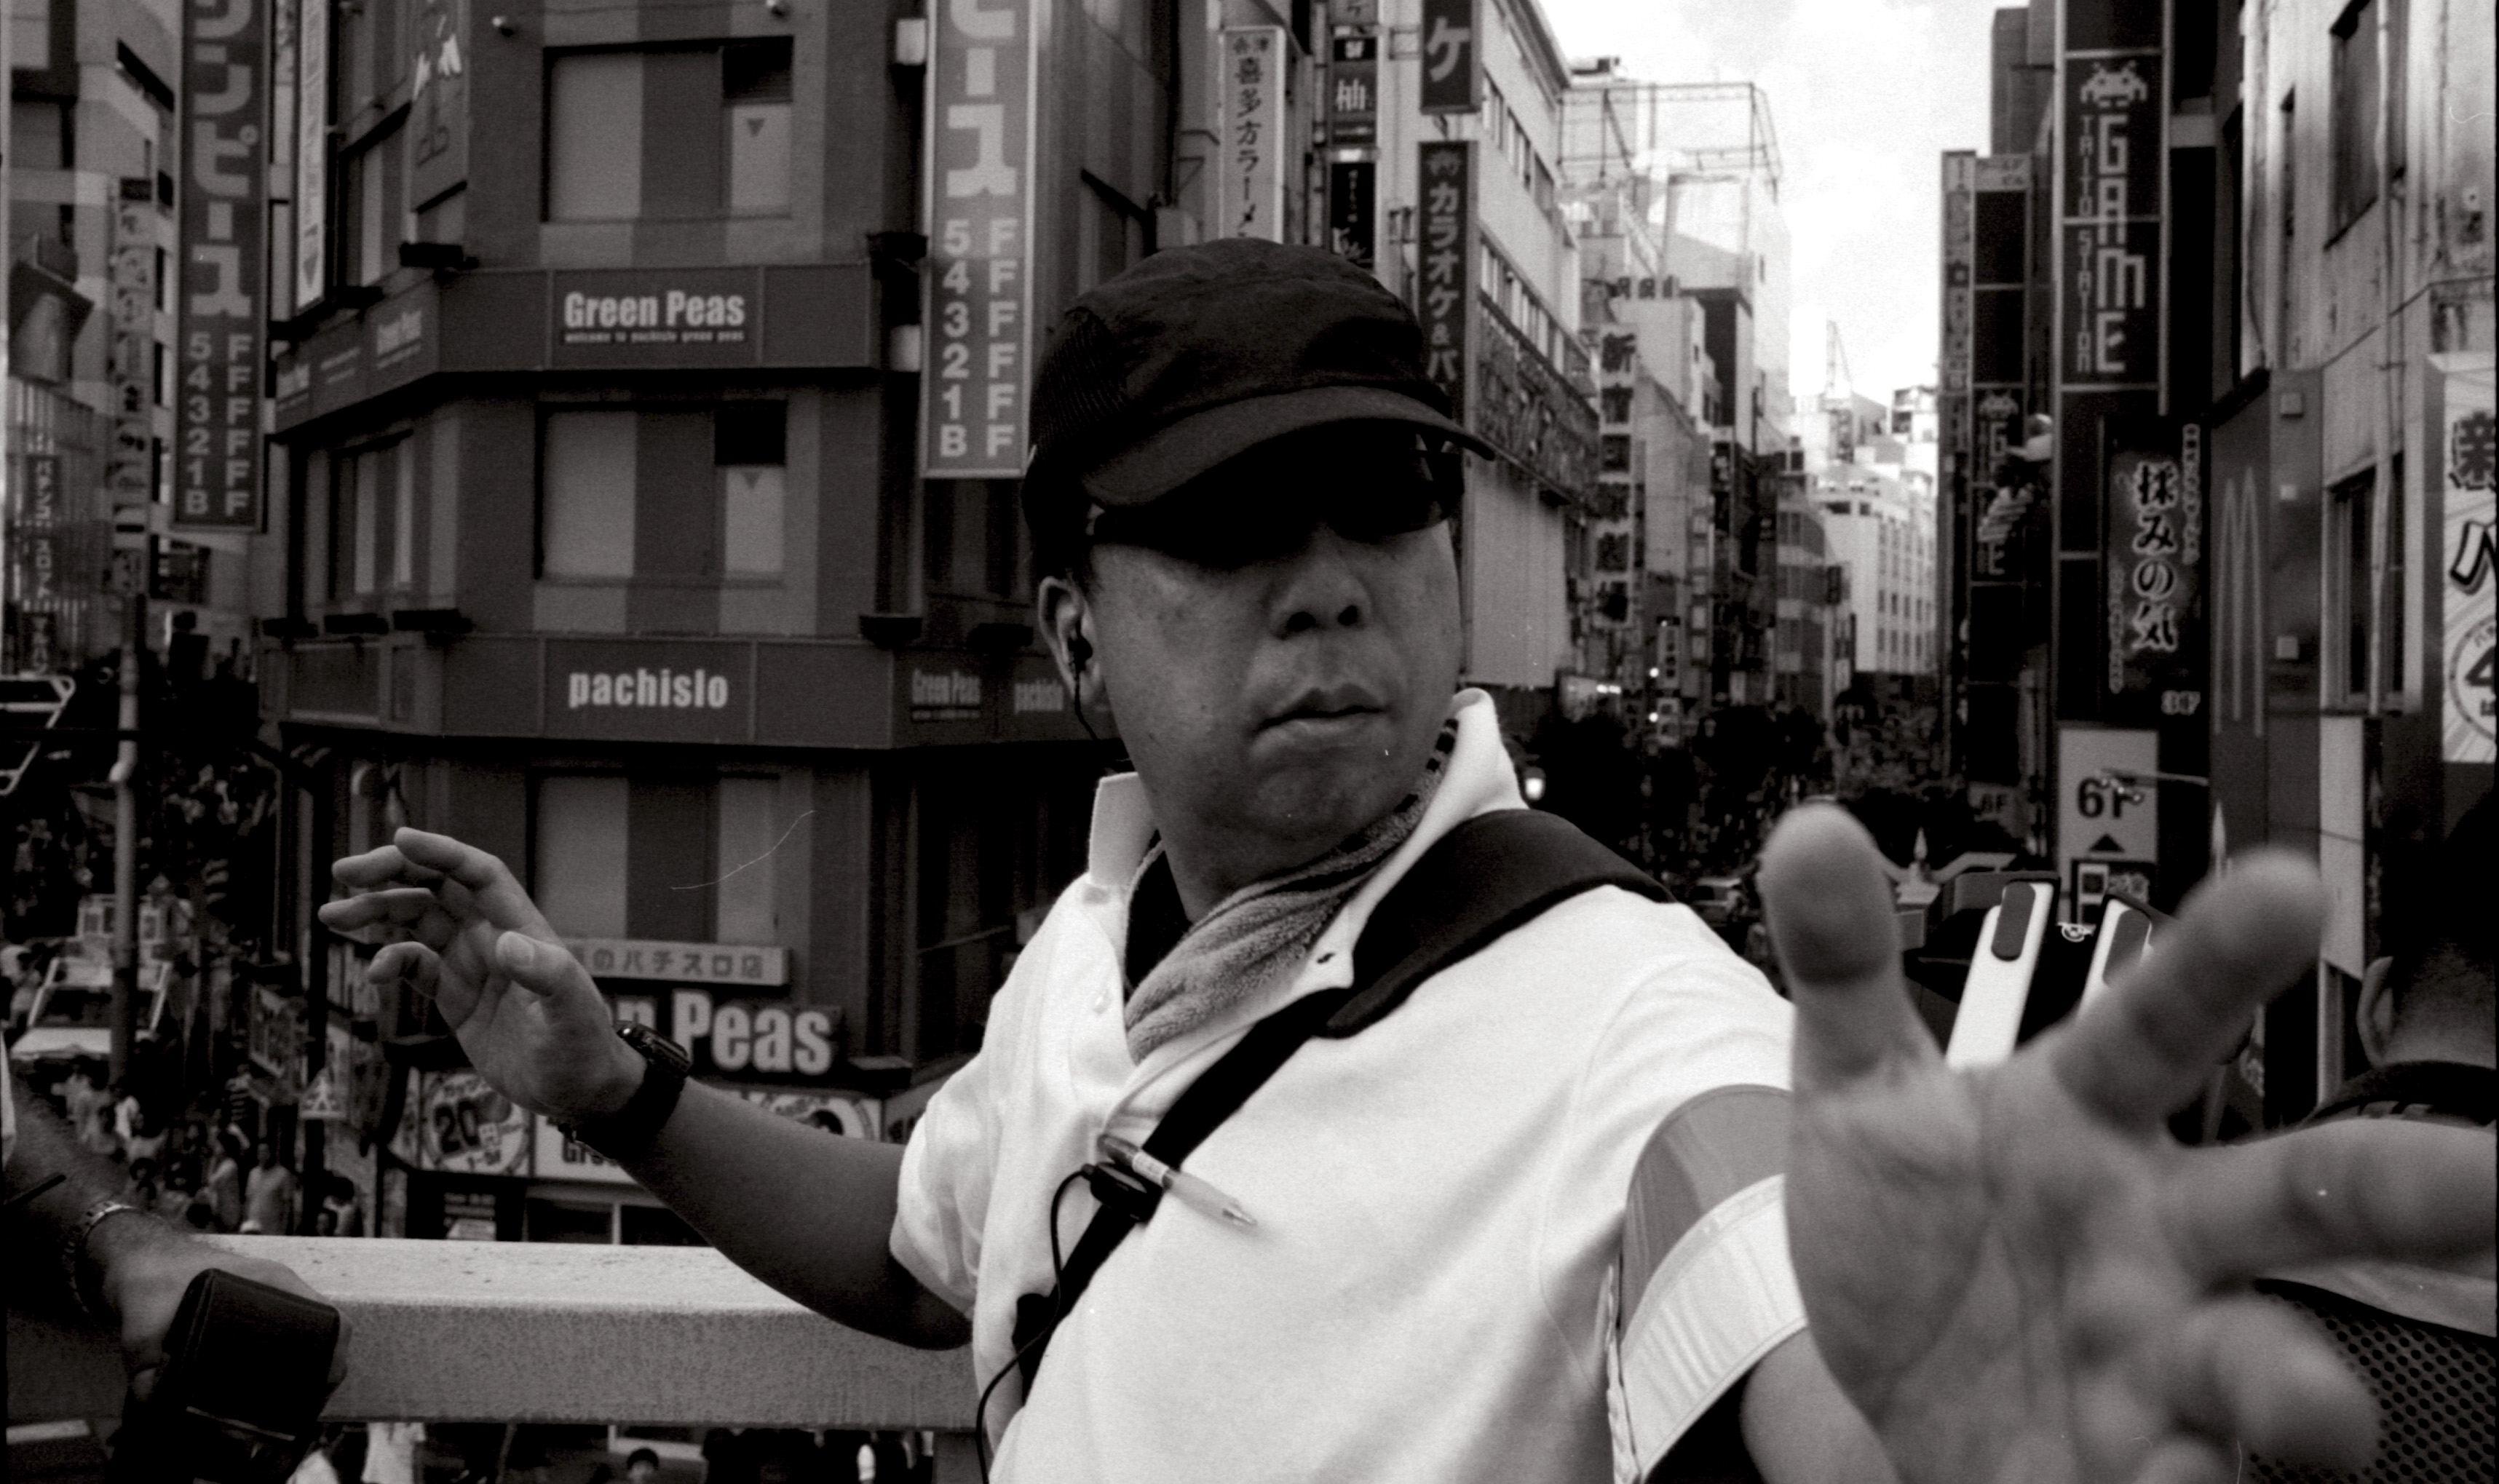 5 simple ideas for street photography - Japan Camera Hunter